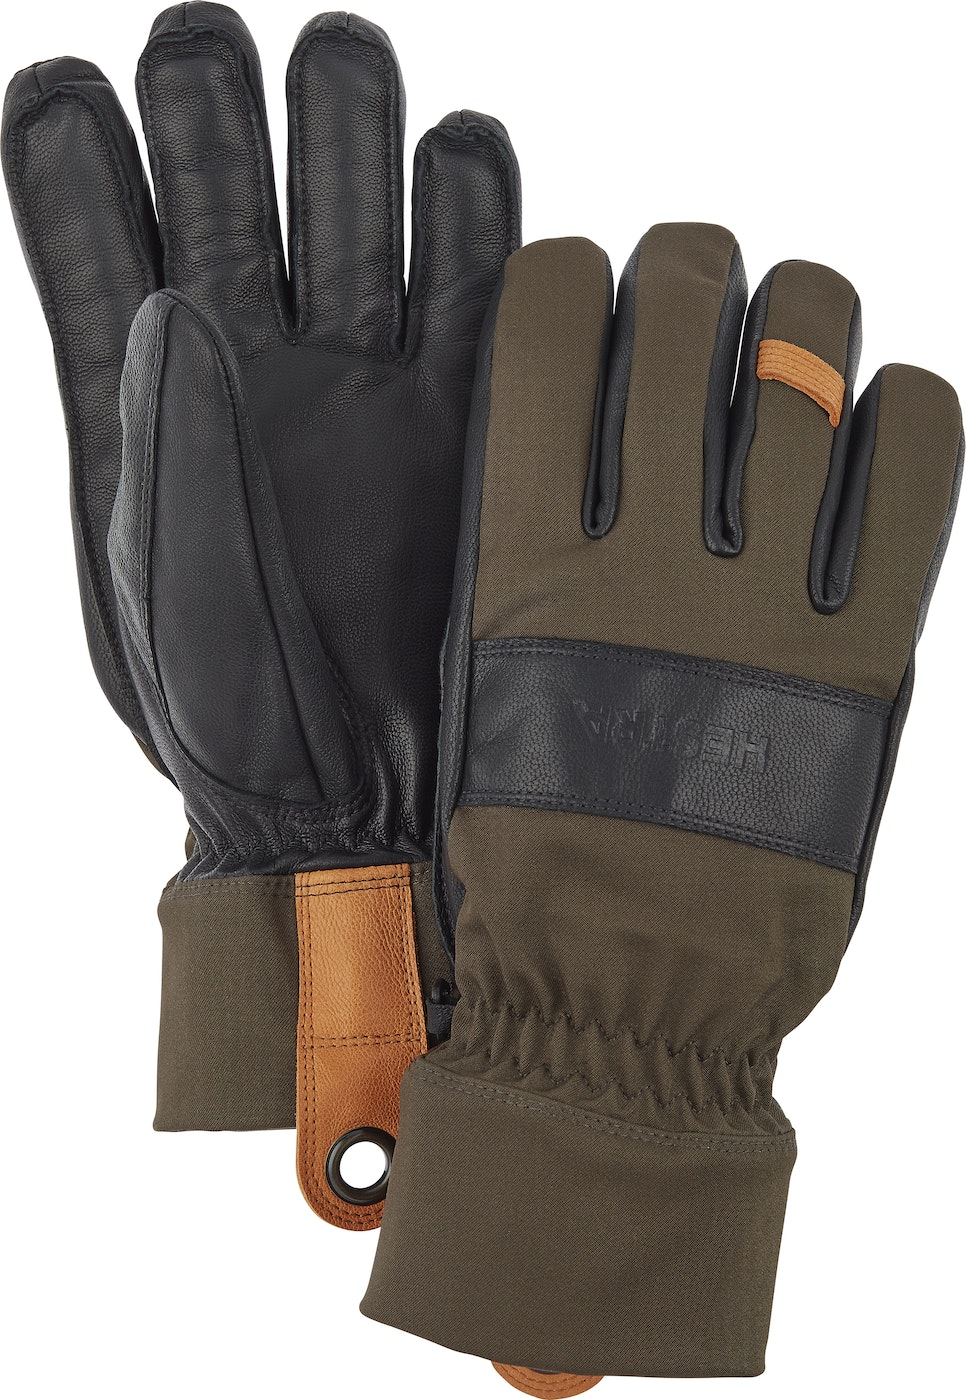 Product image for 31220 Highland Glove